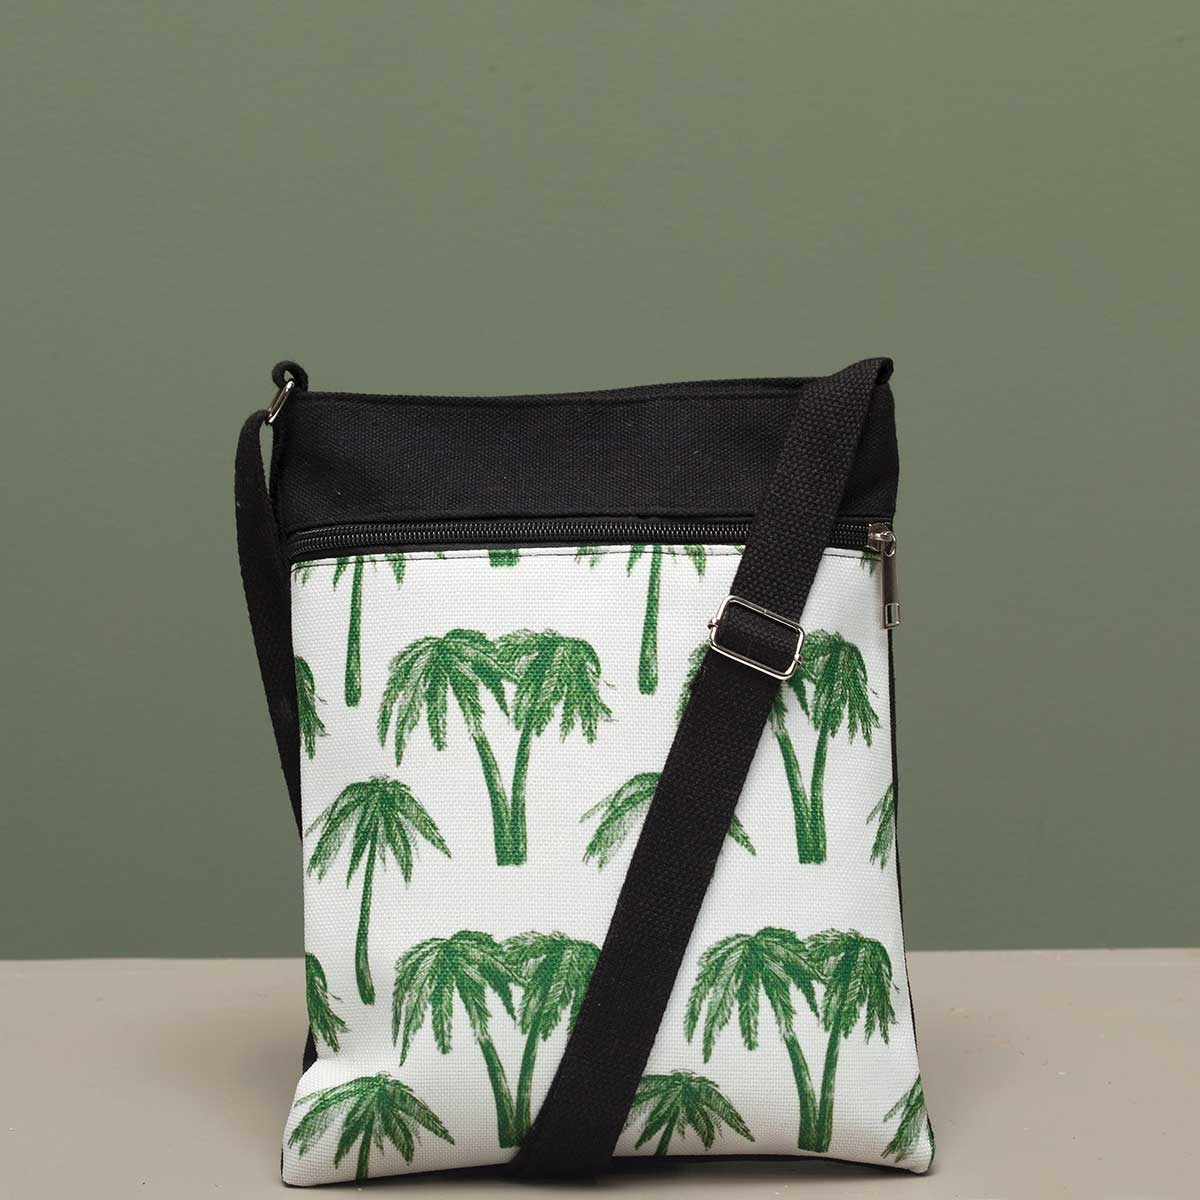 PALM TREE BAG CROSSBODY